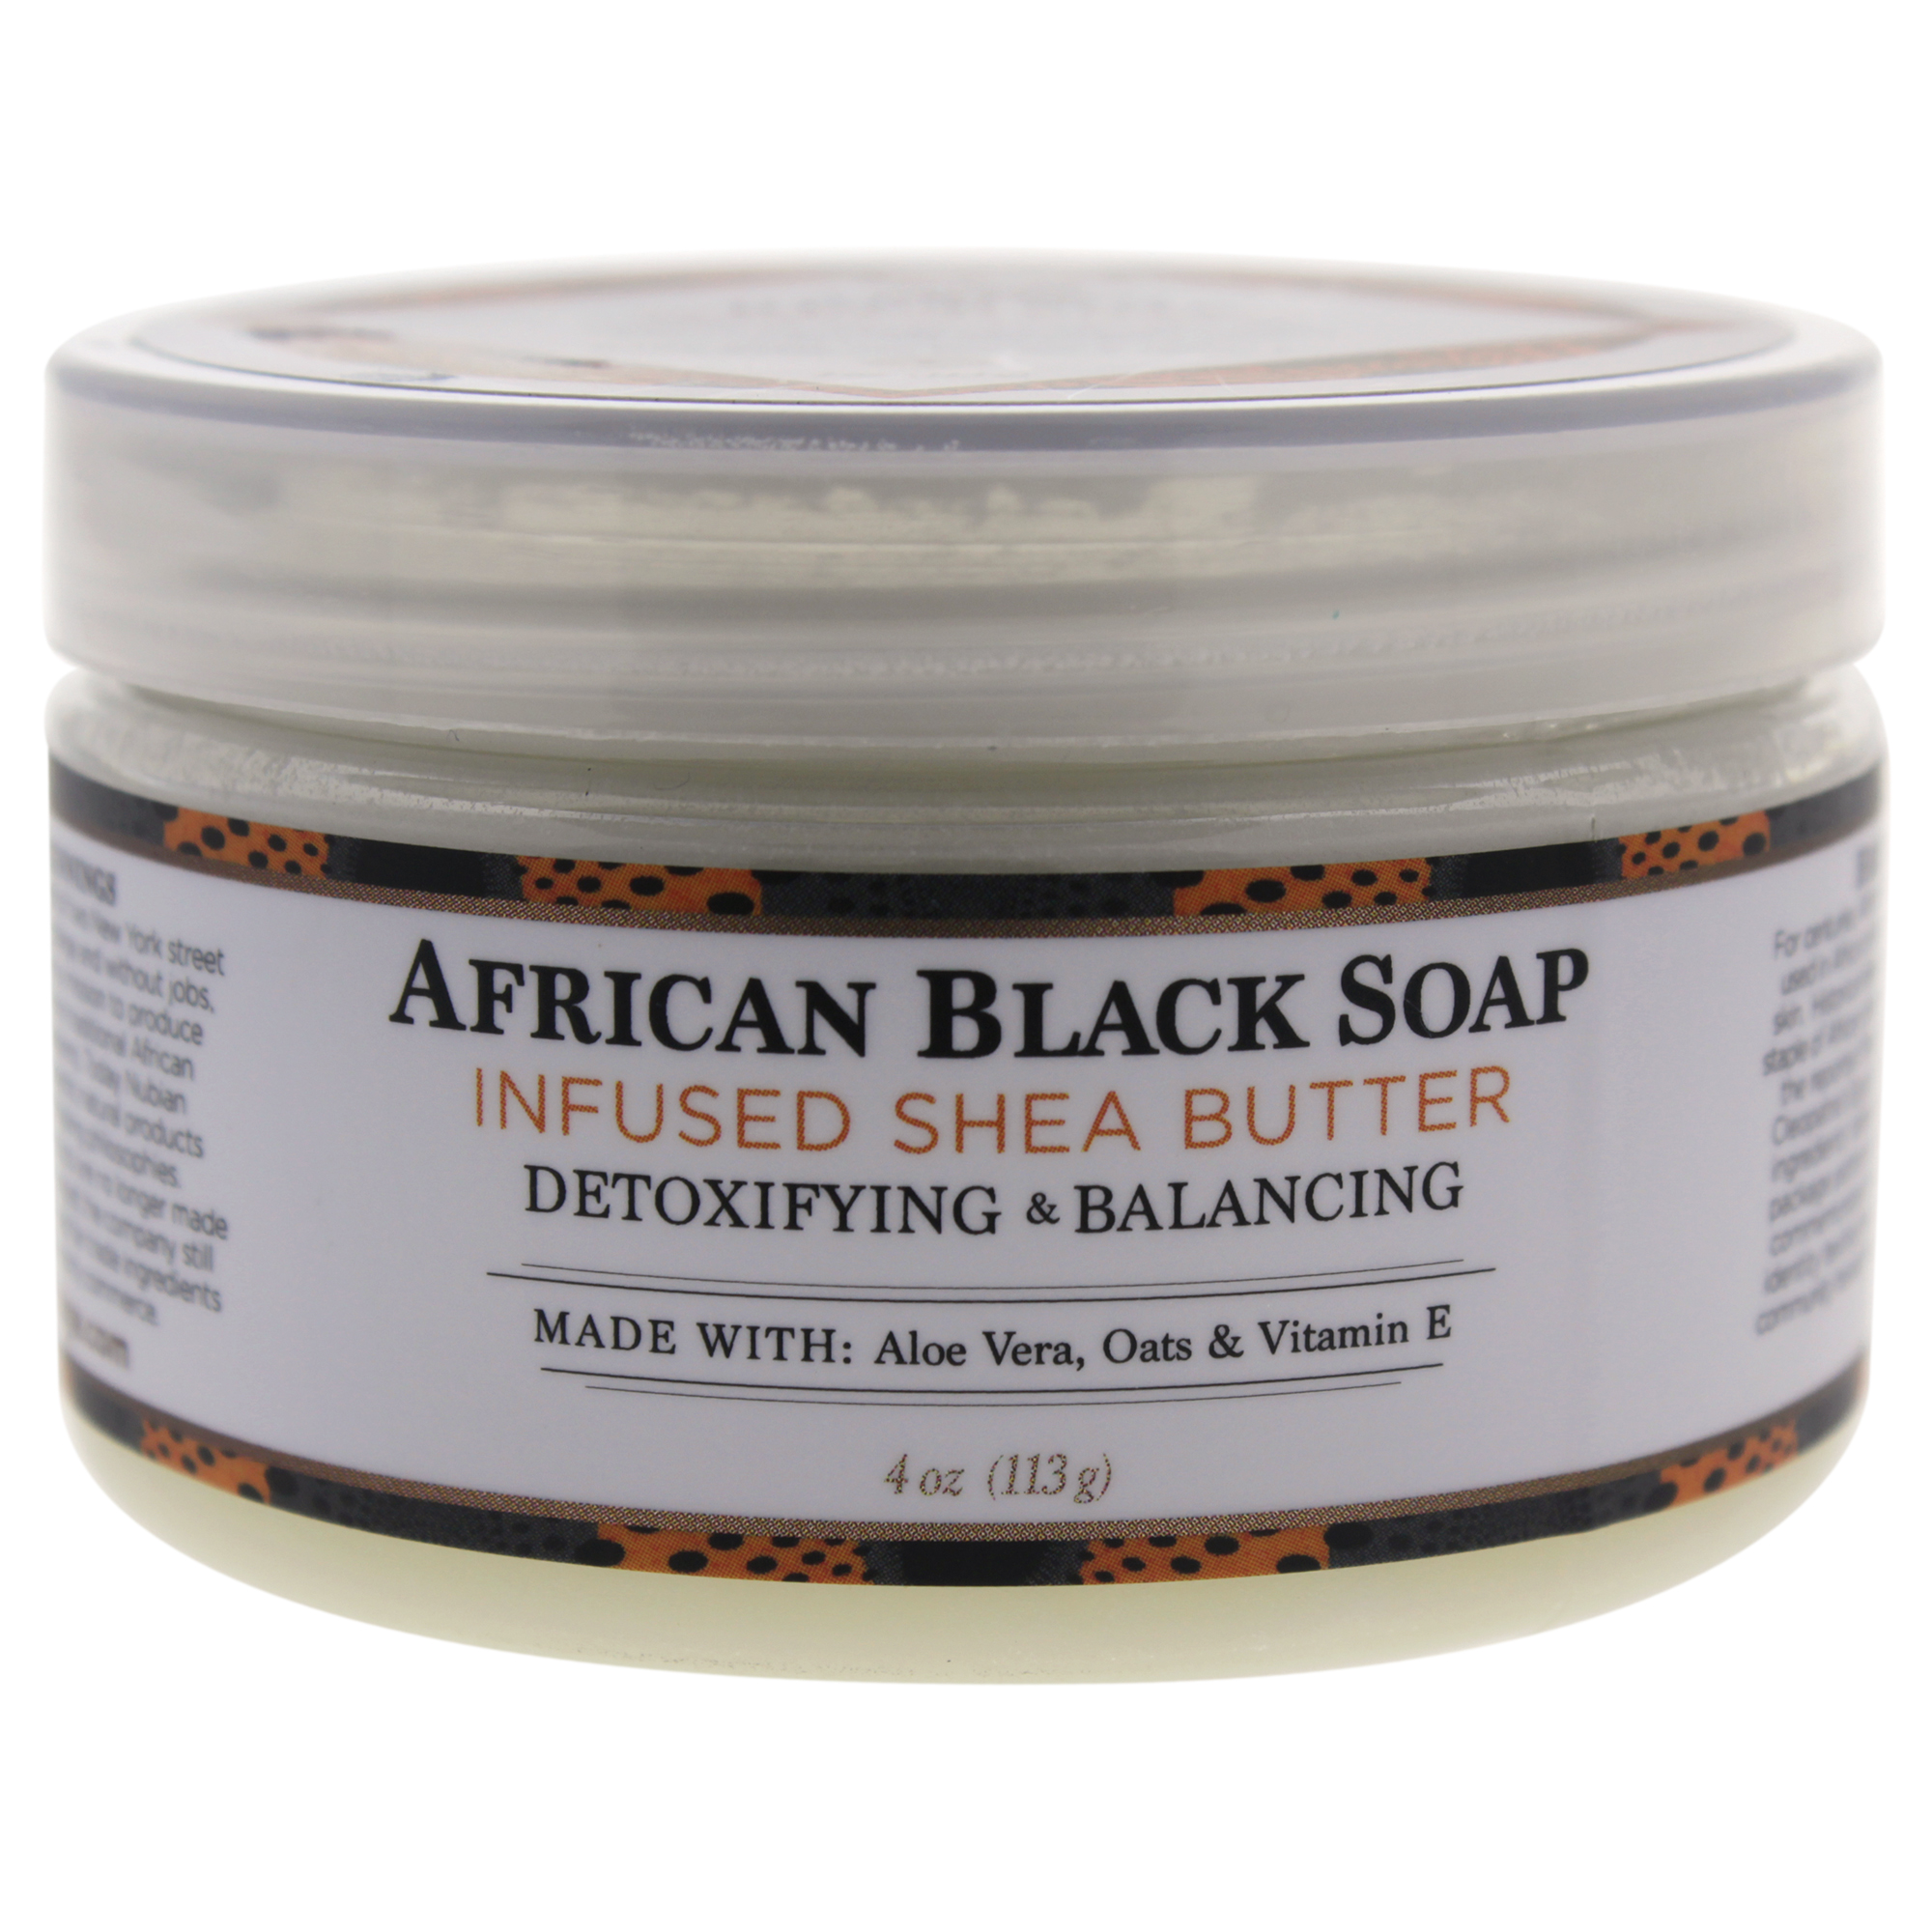 Shea Butter Infused with African Black Soap Extract